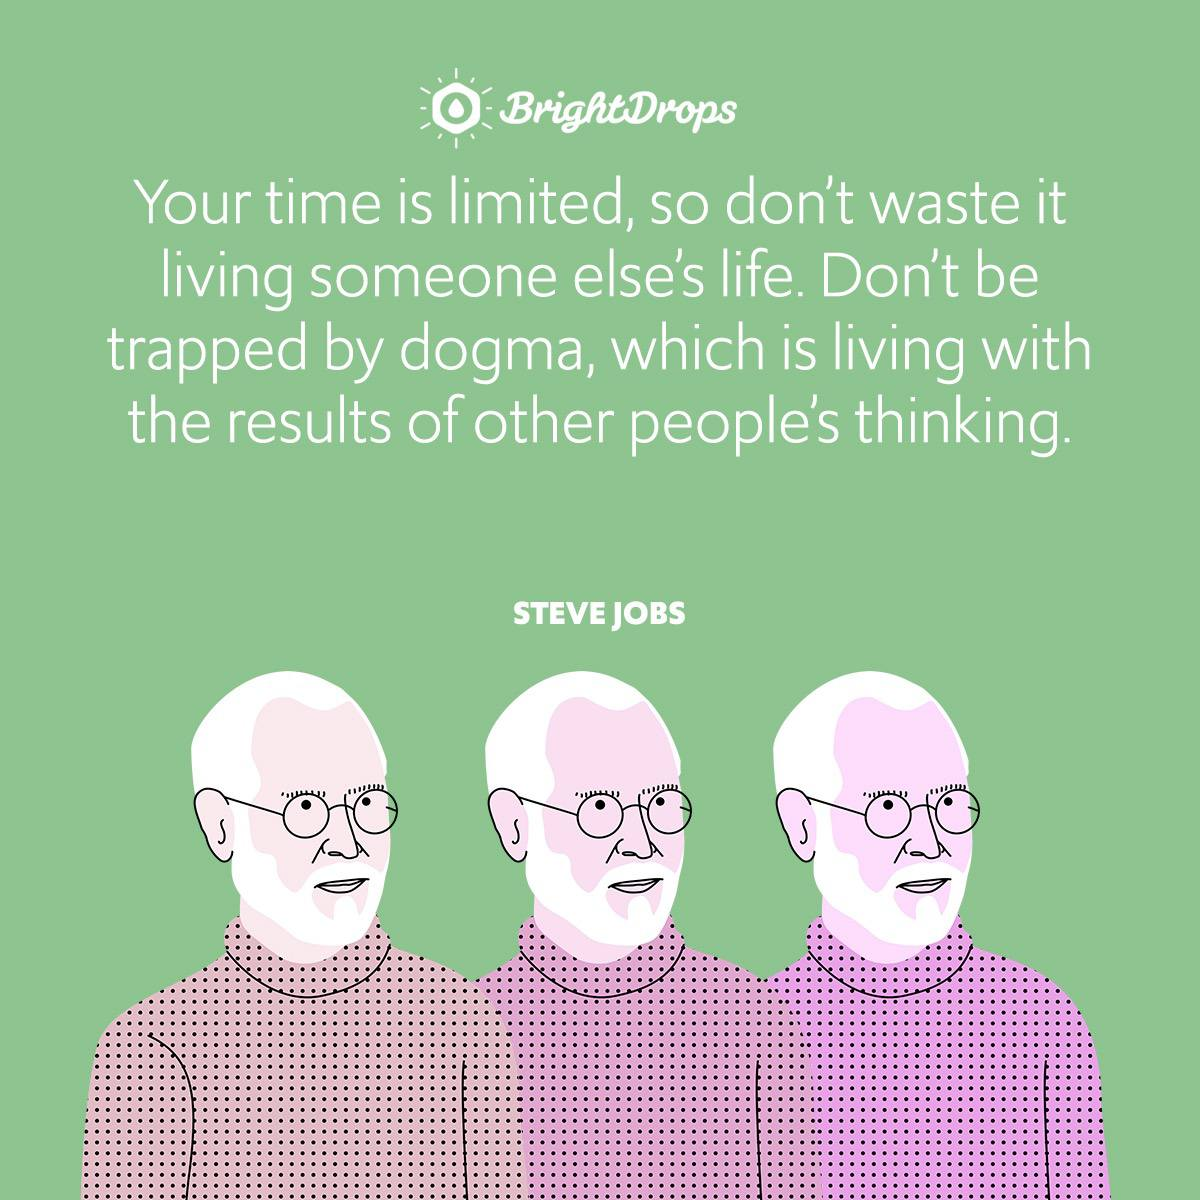 Your time is limited, so don't waste it living someone else's life. Don't be trapped by dogma, which is living with the results of other people's thinking.